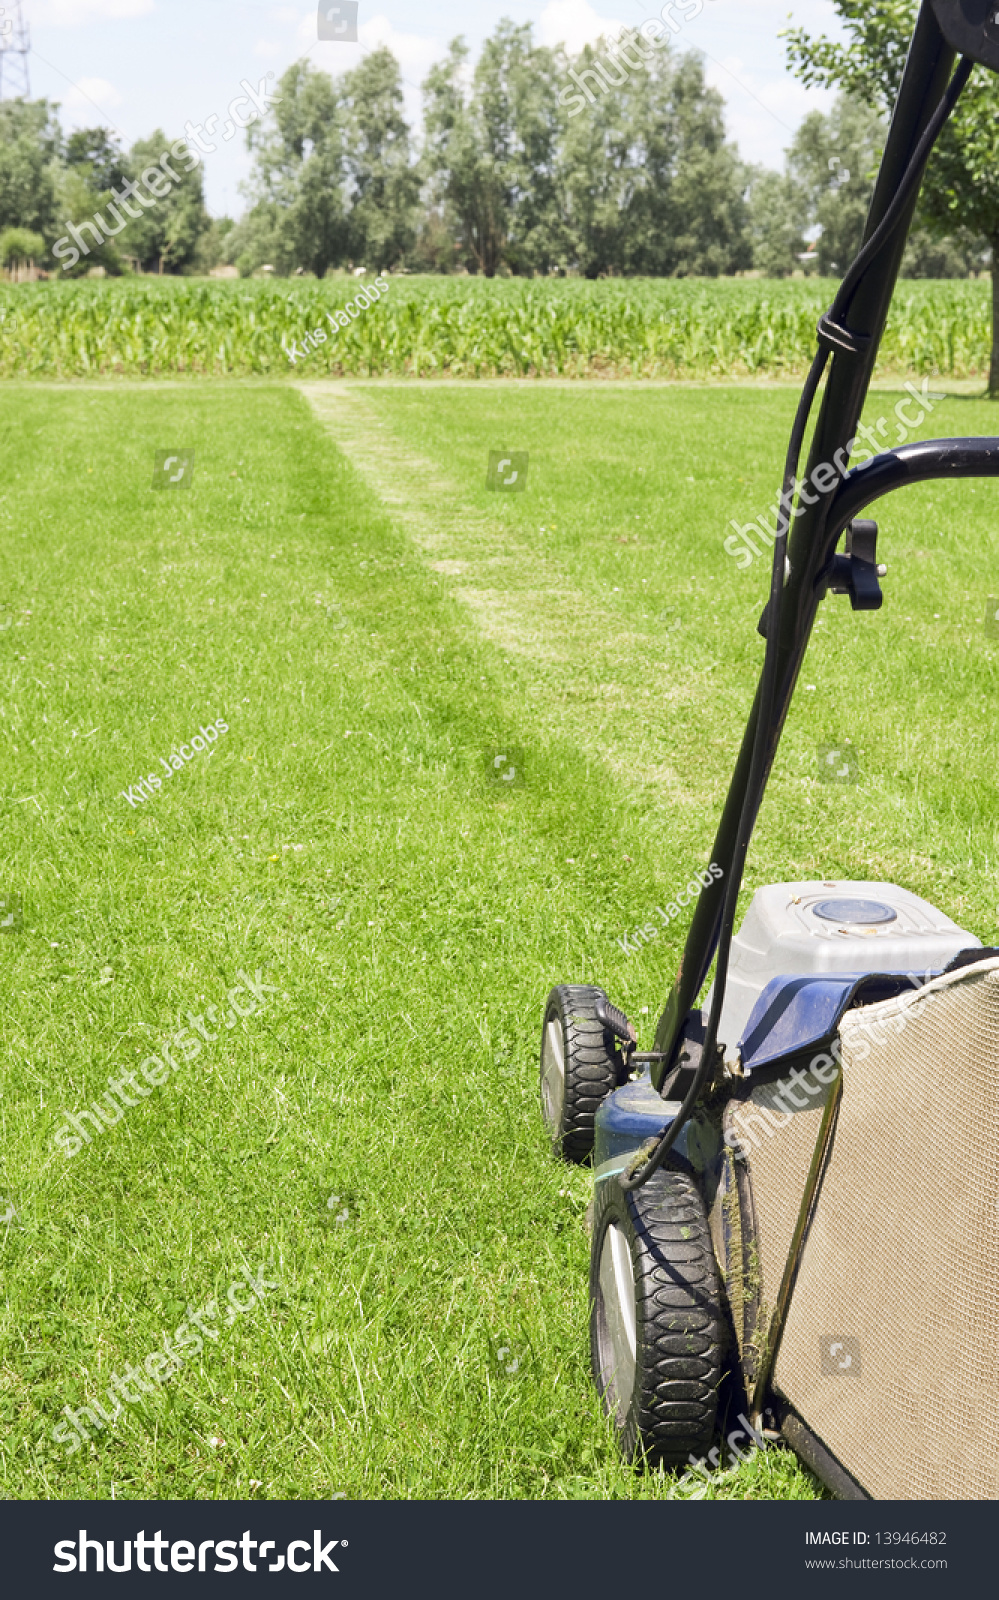 Lawn Mower London Ontario Image Lawn Mower Ready Cut Grass Stock Photo Edit Now 13946482